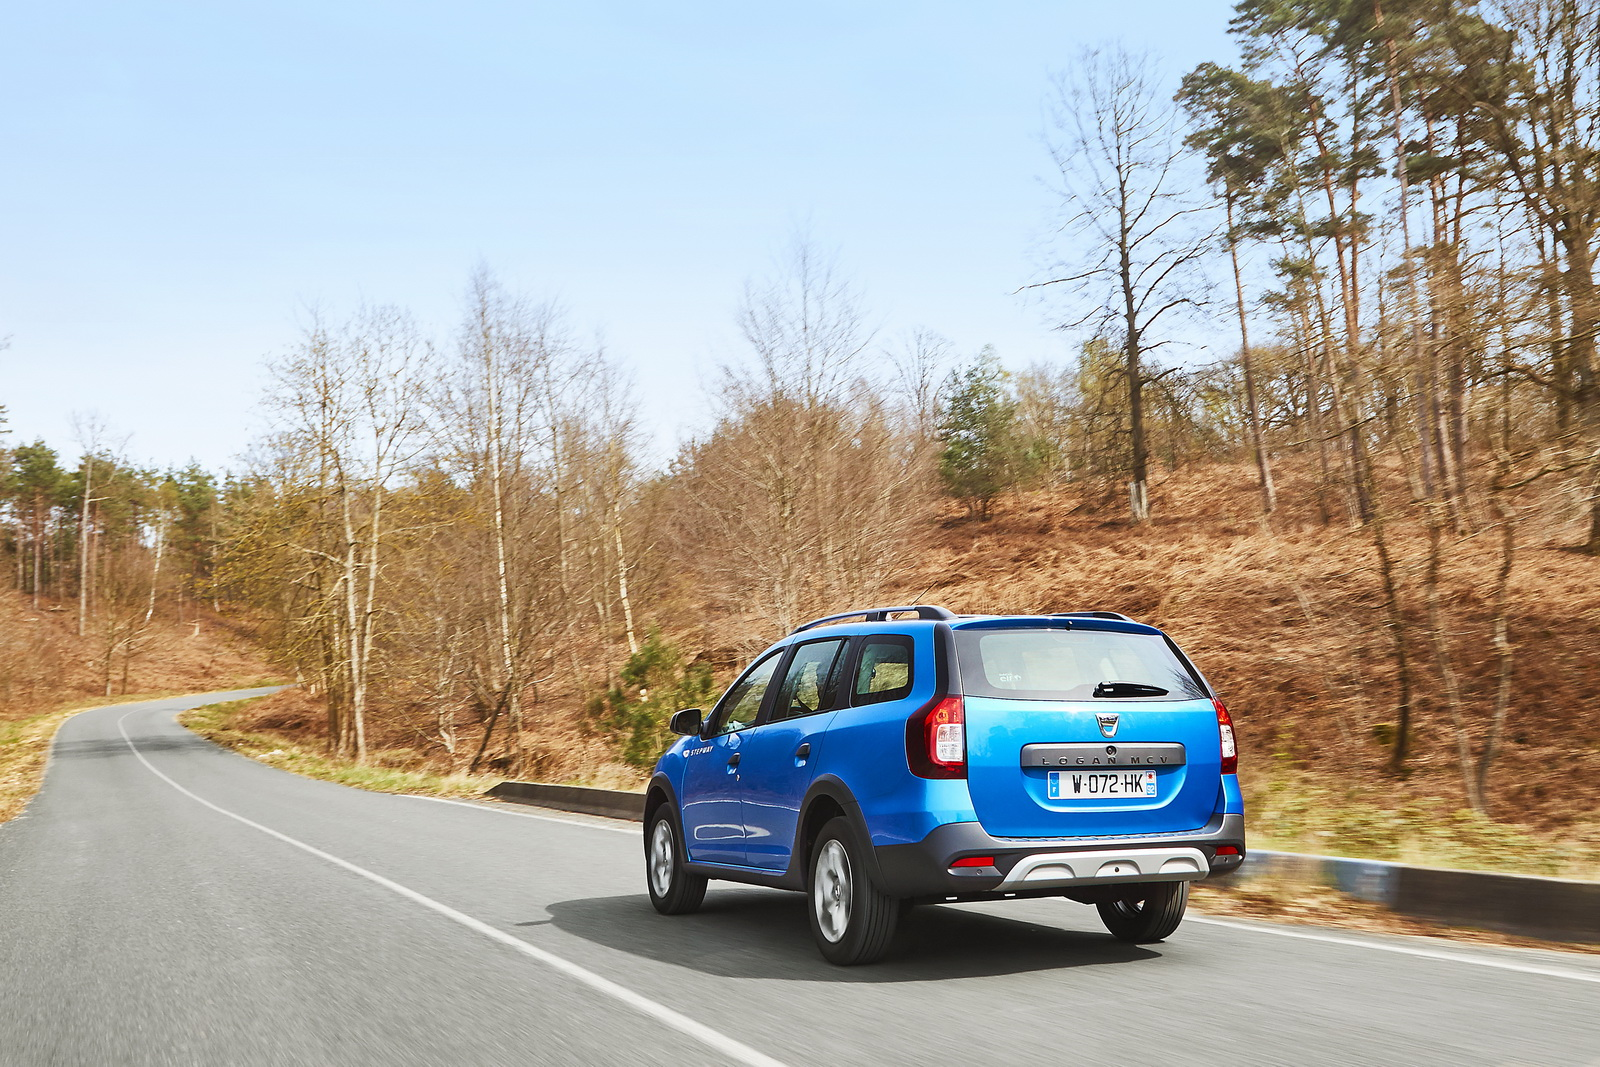 dacia gives logan mcv a lift with new rugged stepway version. Black Bedroom Furniture Sets. Home Design Ideas